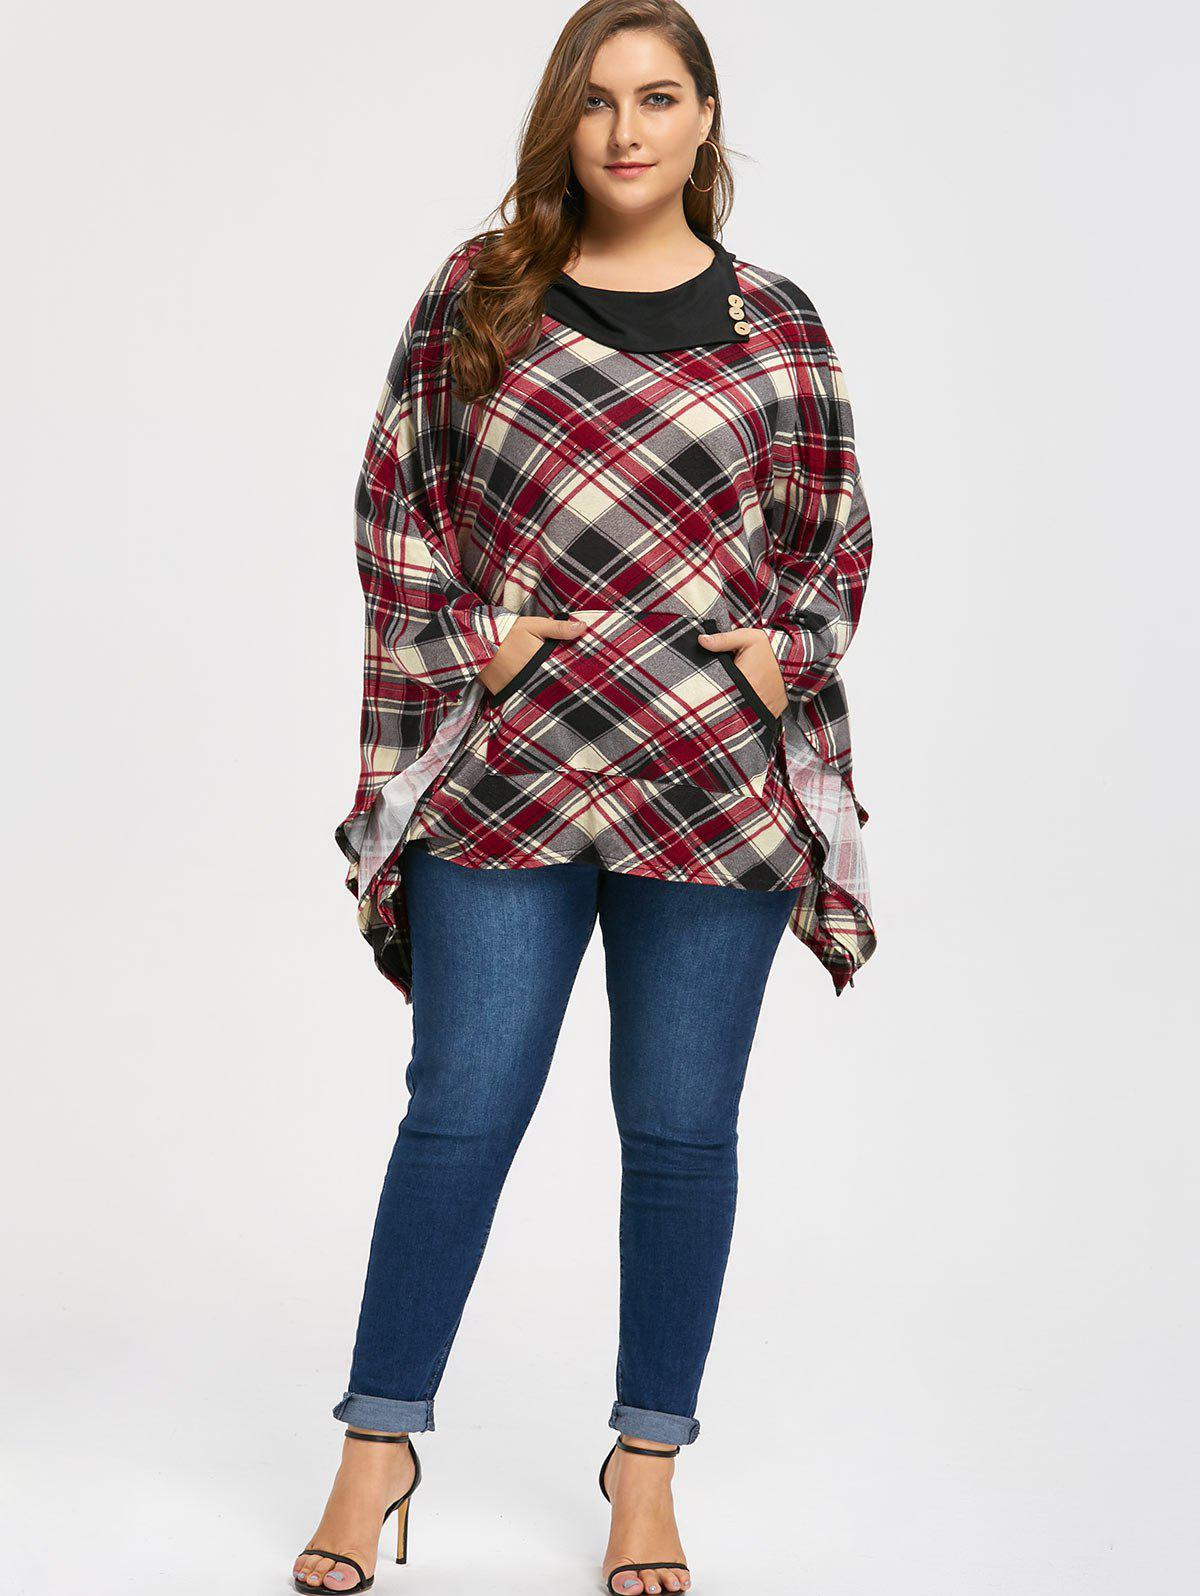 Kangaroo Pocket Plaid Plus Size Cape Top - Carré 4XL